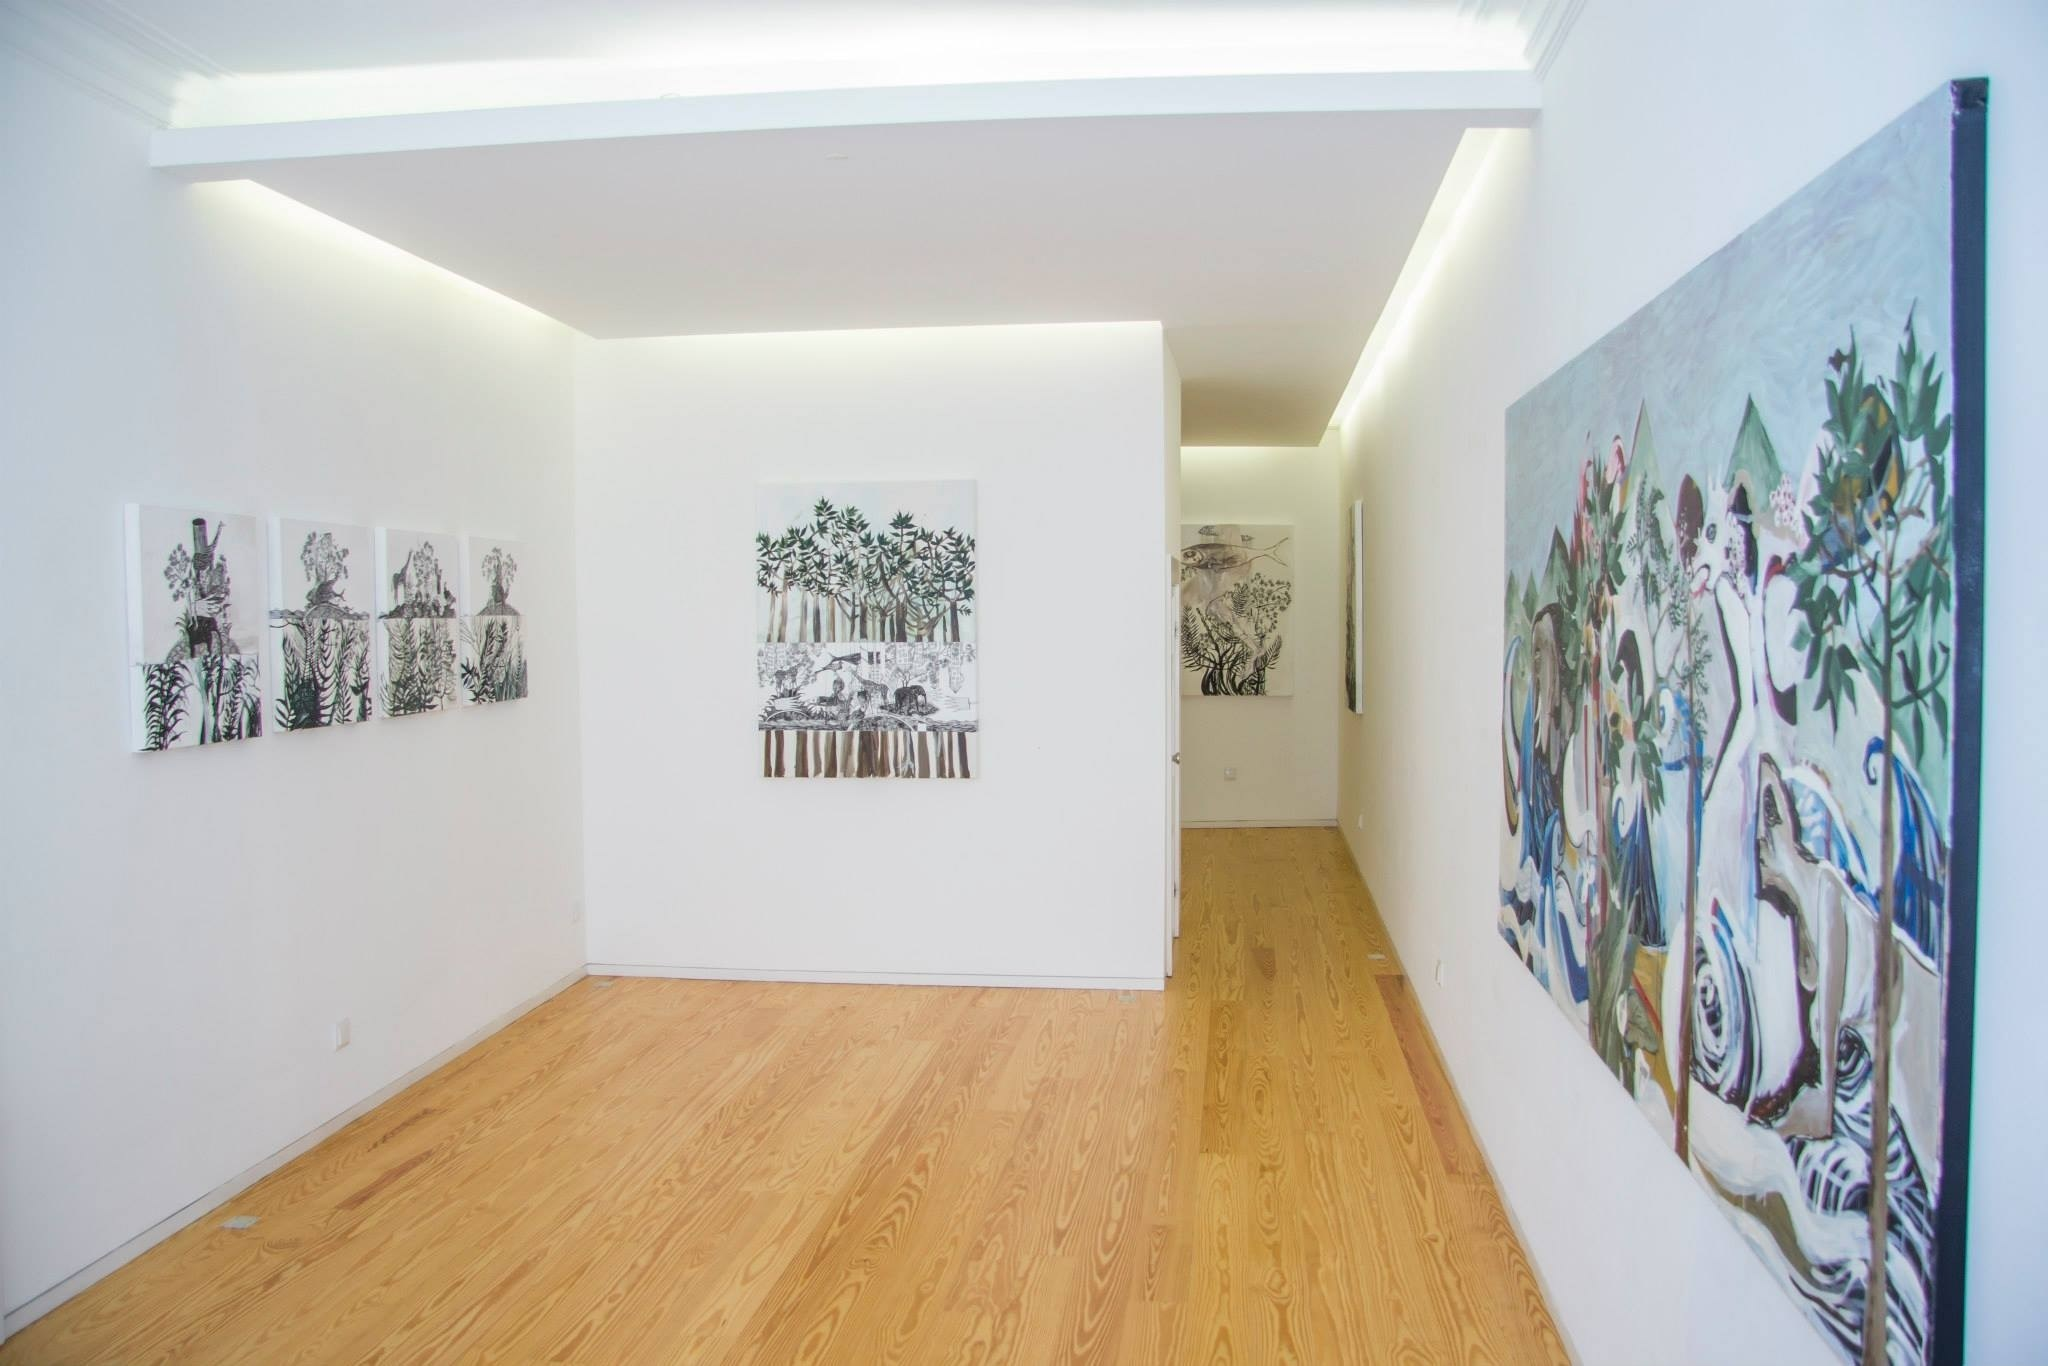 Galeria Metamorfose, art gallery